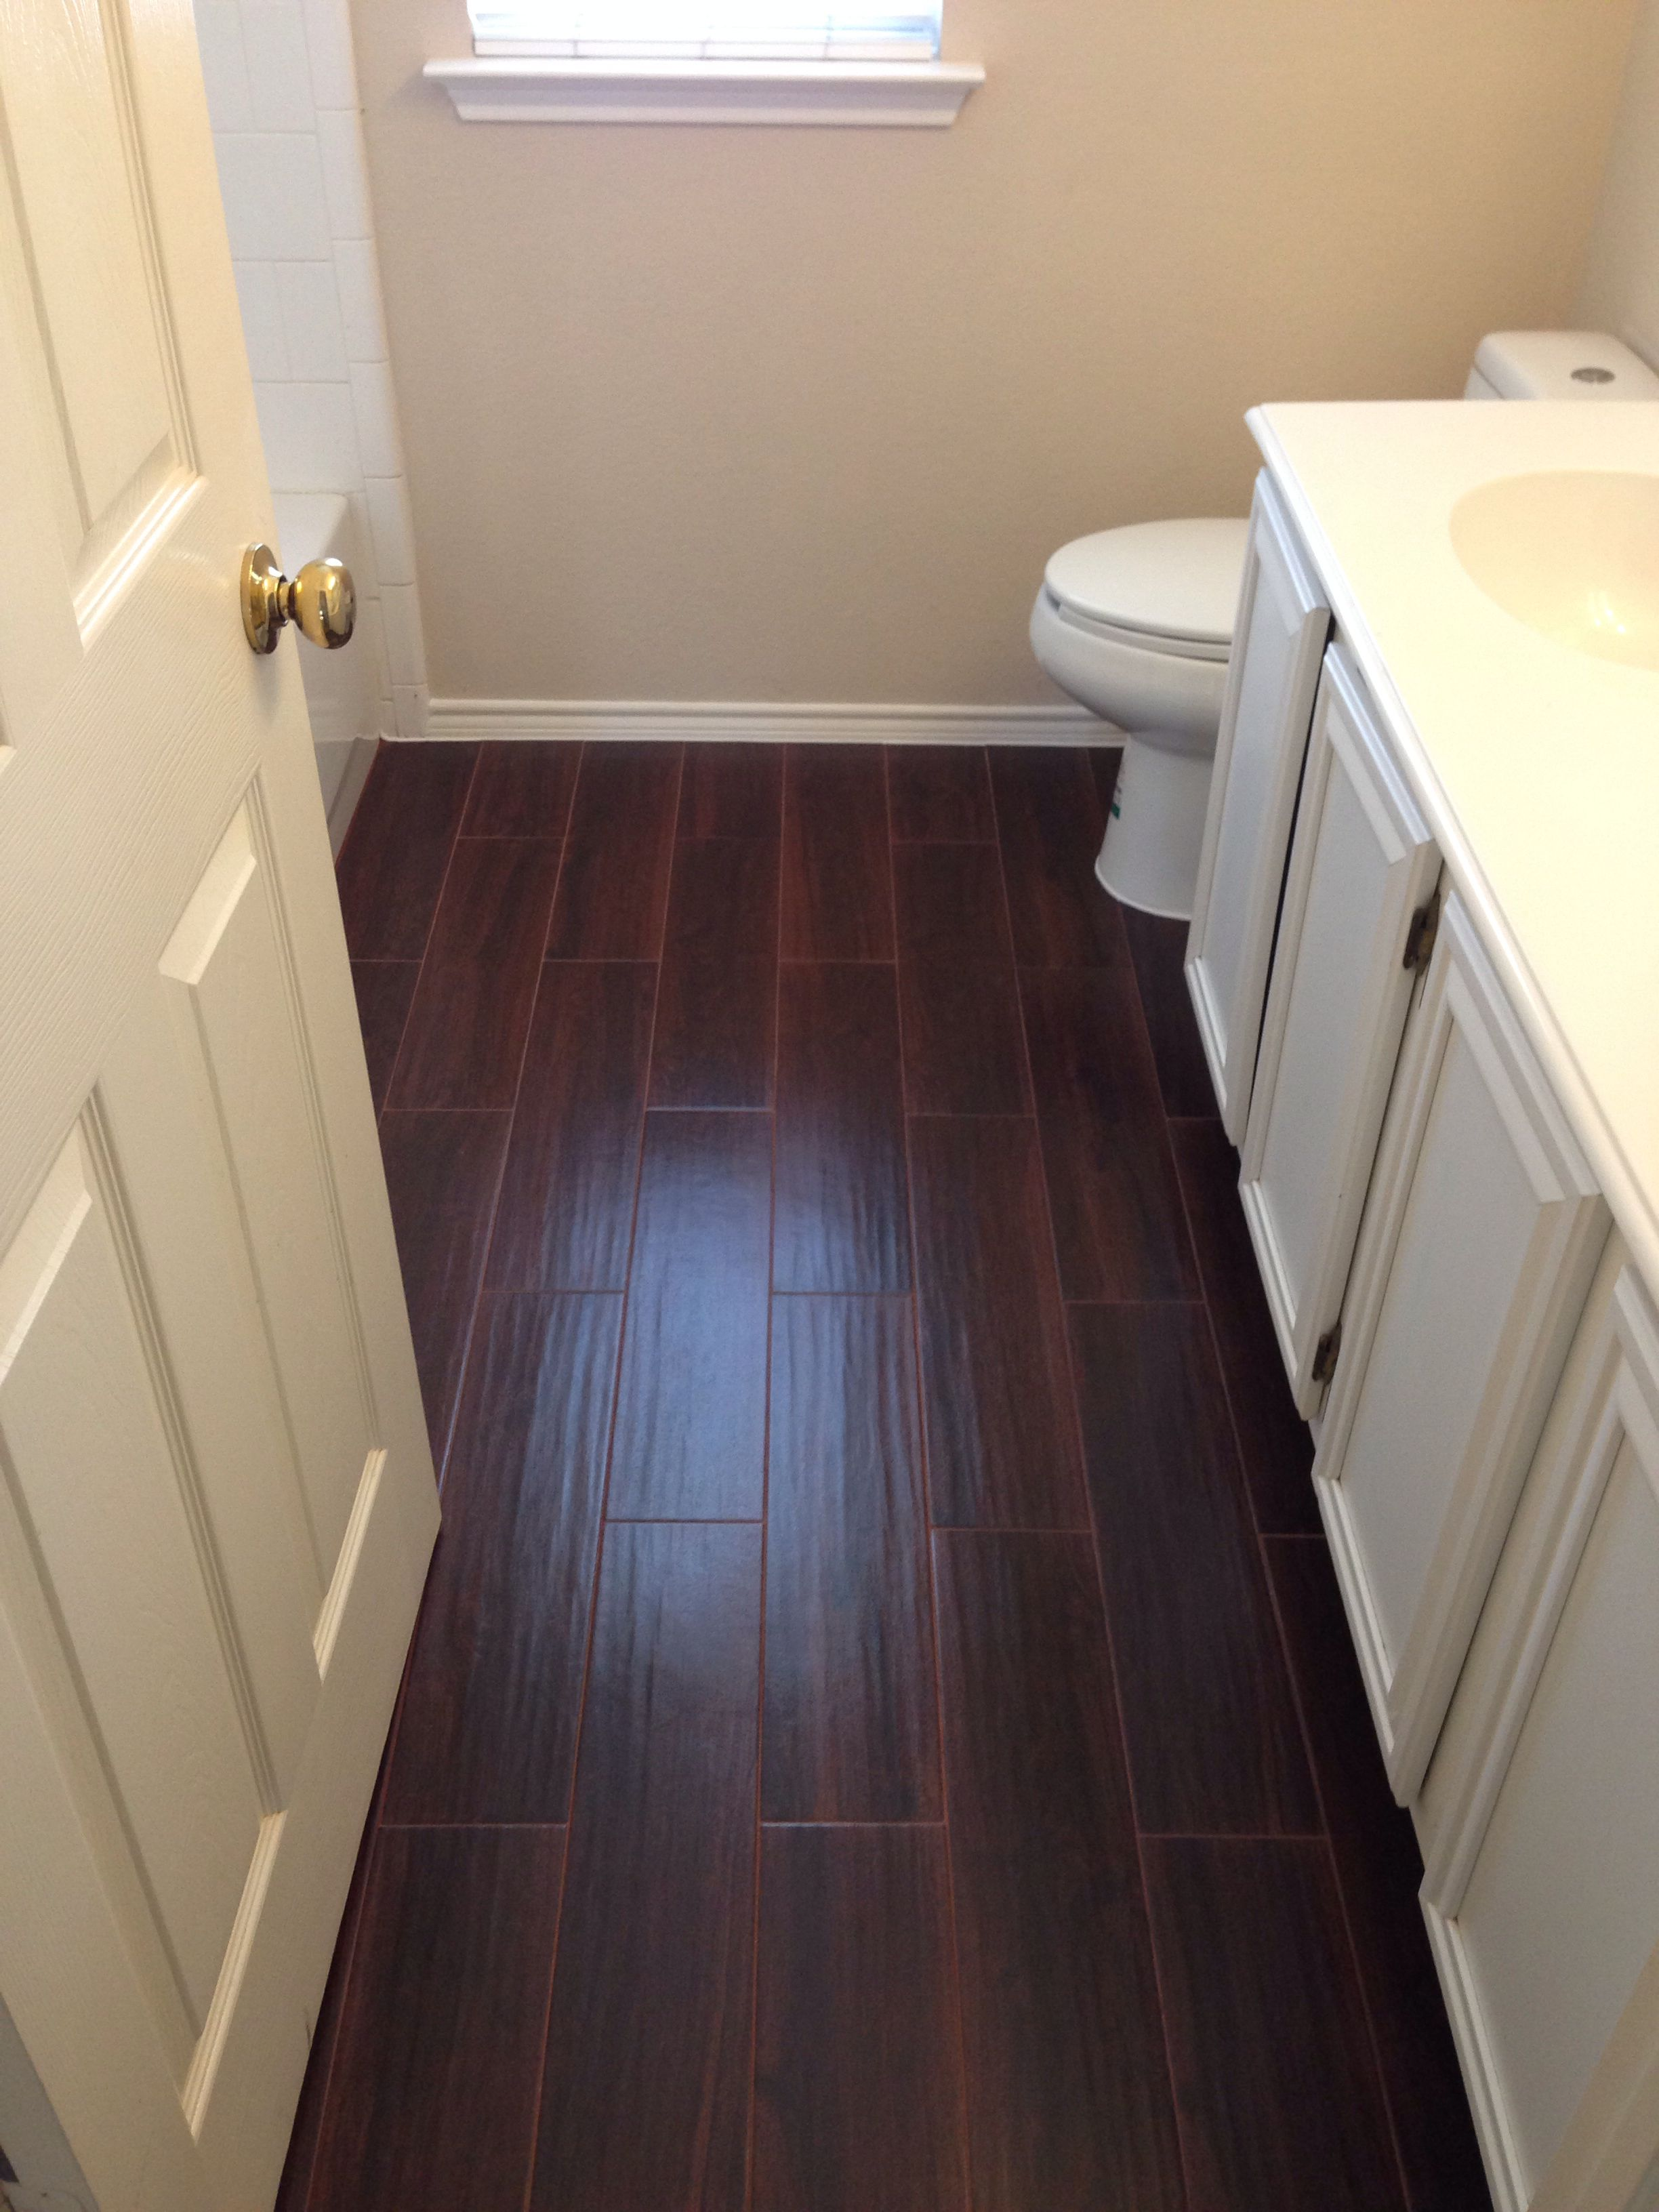 We used porcelain tile that looks like hardwood for our